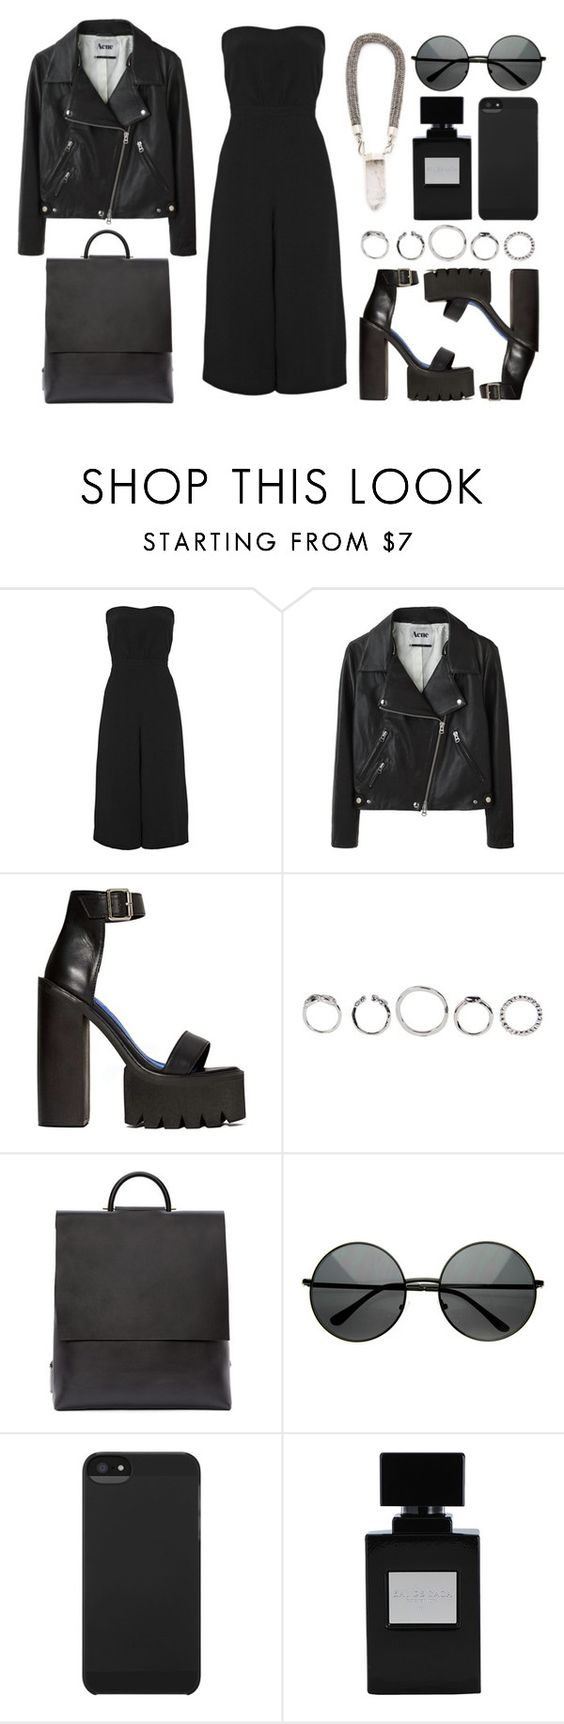 """(J) - Jumpsuits"" by eva-jez ❤ liked on Polyvore featuring мода, Elizabeth and James, Acne Studios, Jeffrey Campbell, Building Block и Incase"